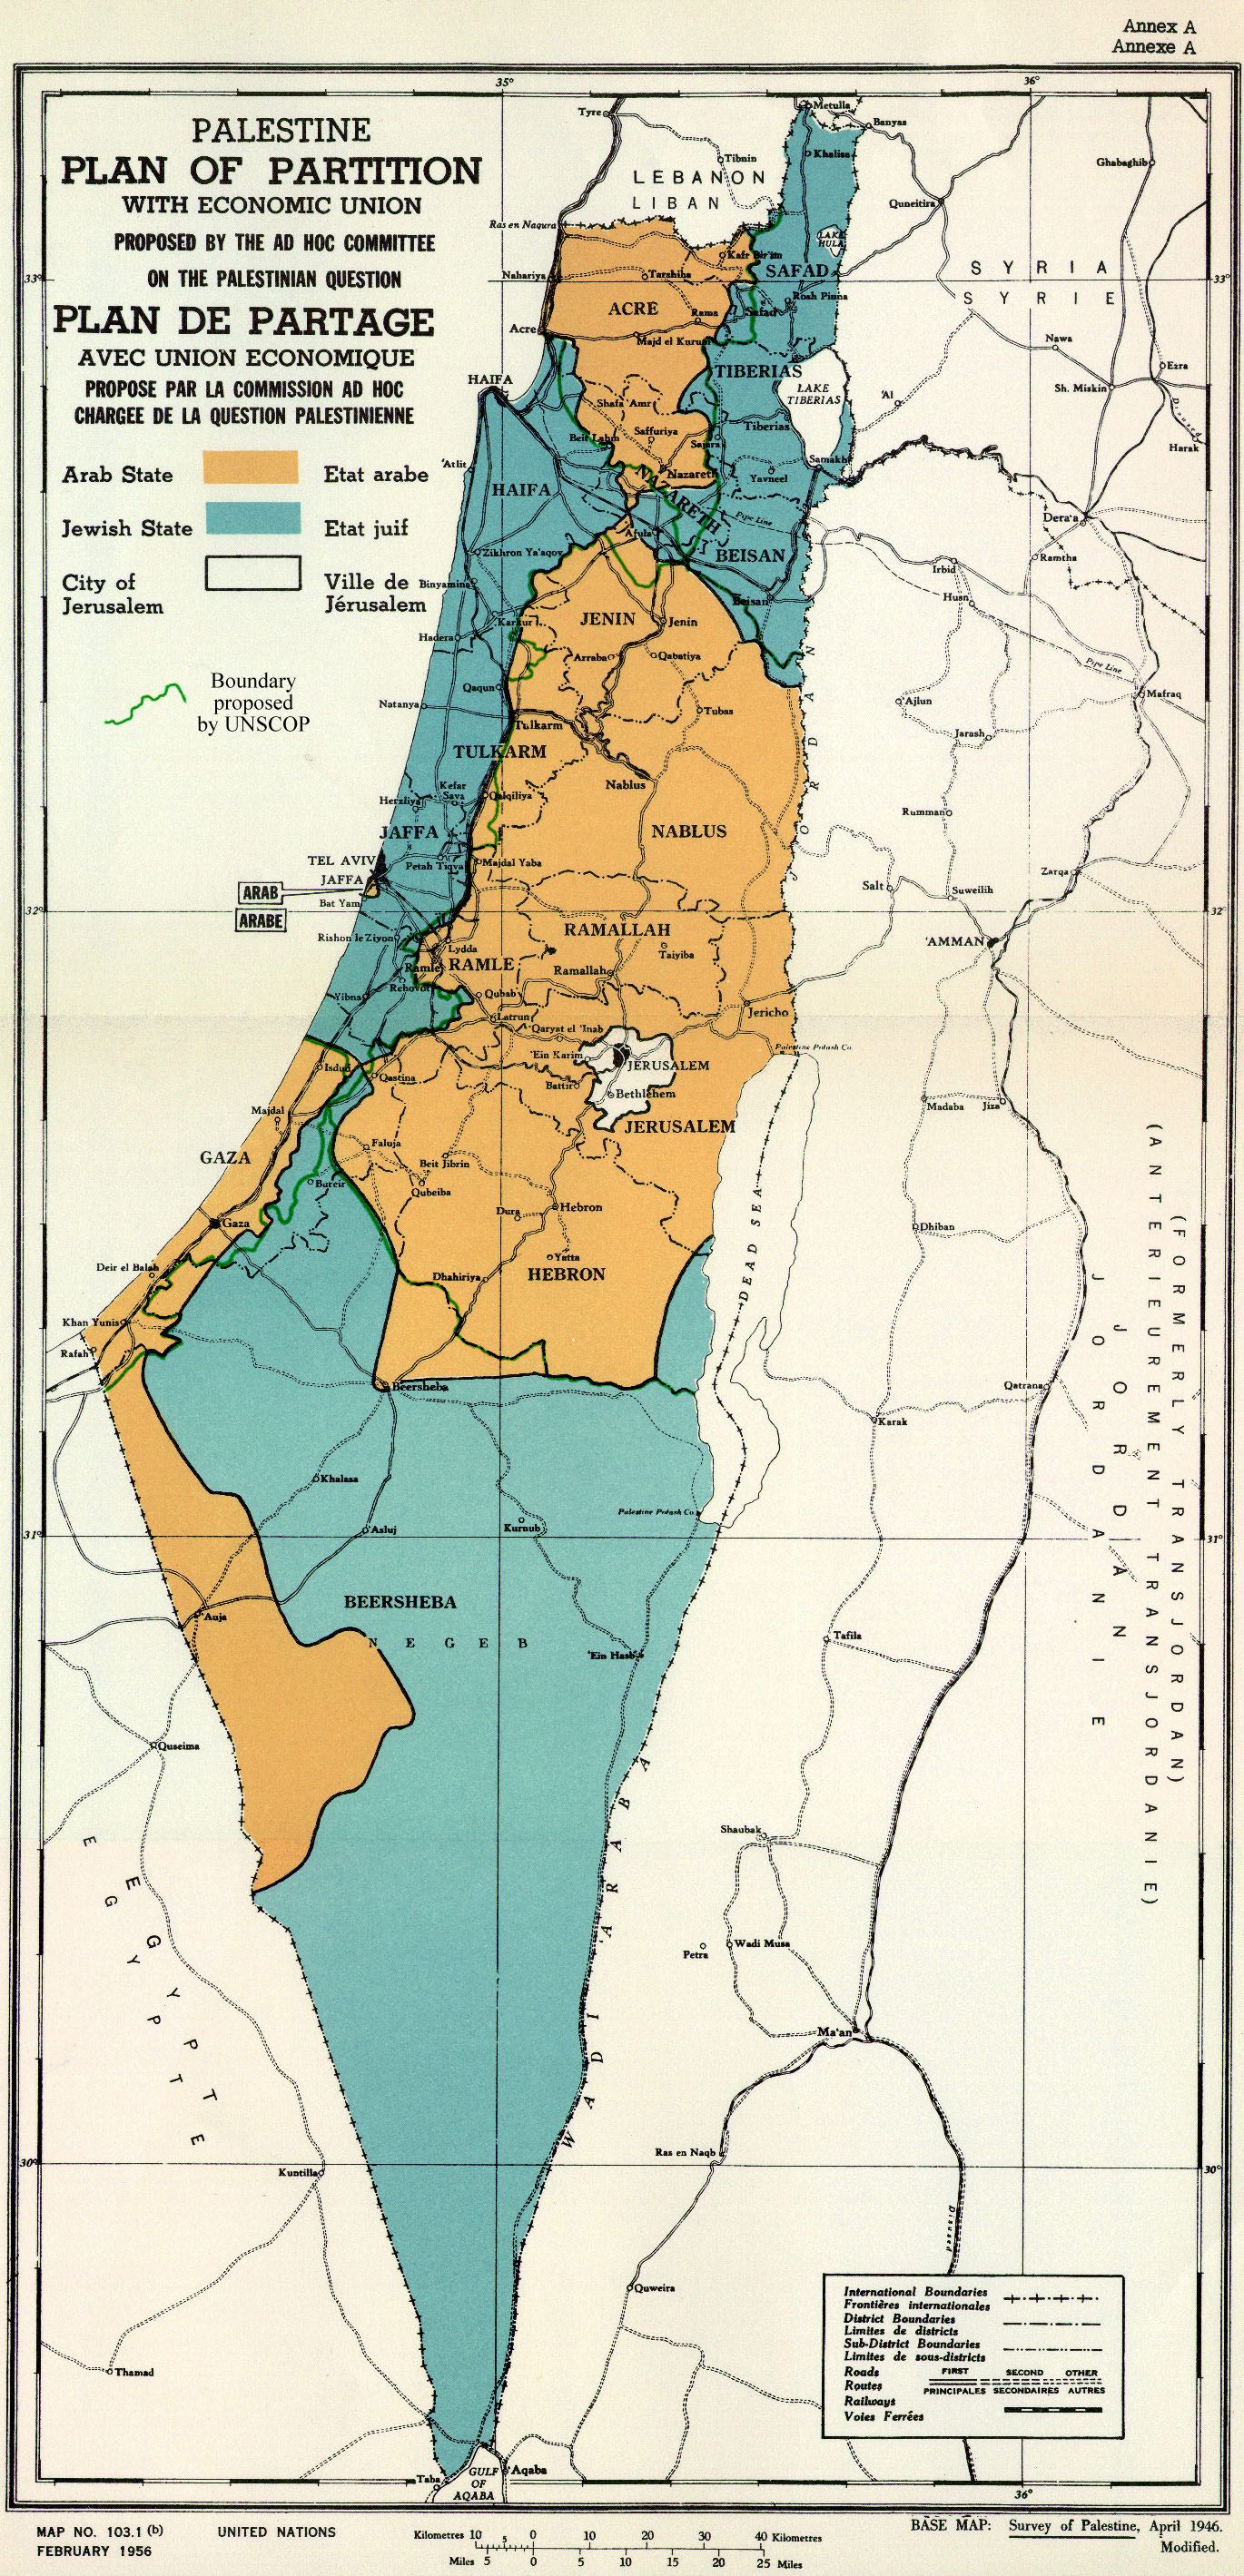 UN_Palestine_Partition_Versions_1947--2-